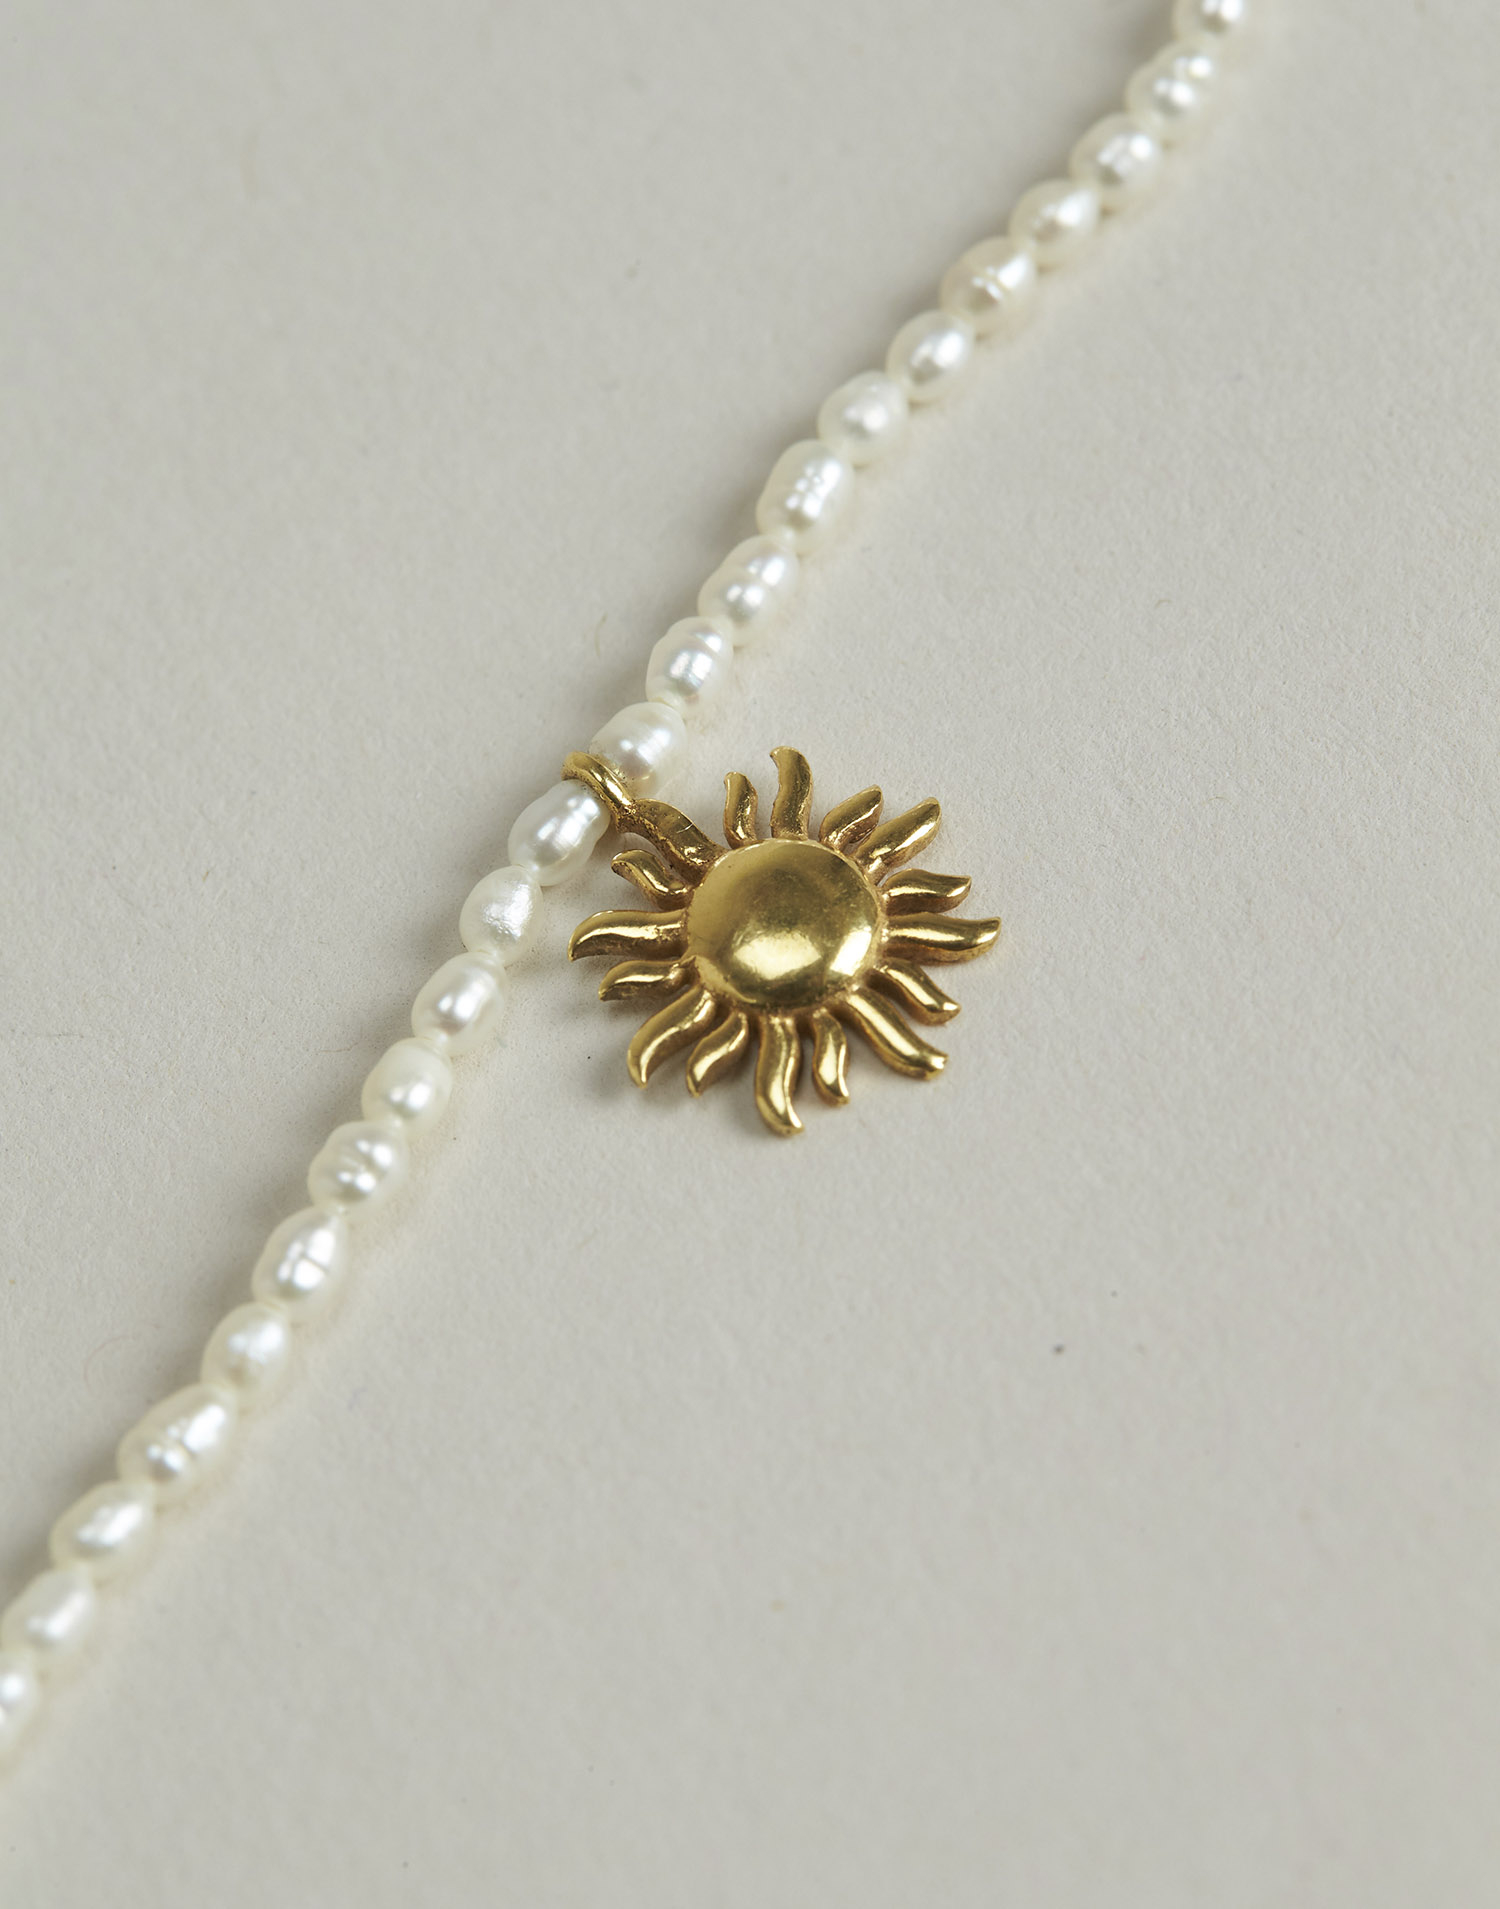 Gold-plated sun pearl necklace